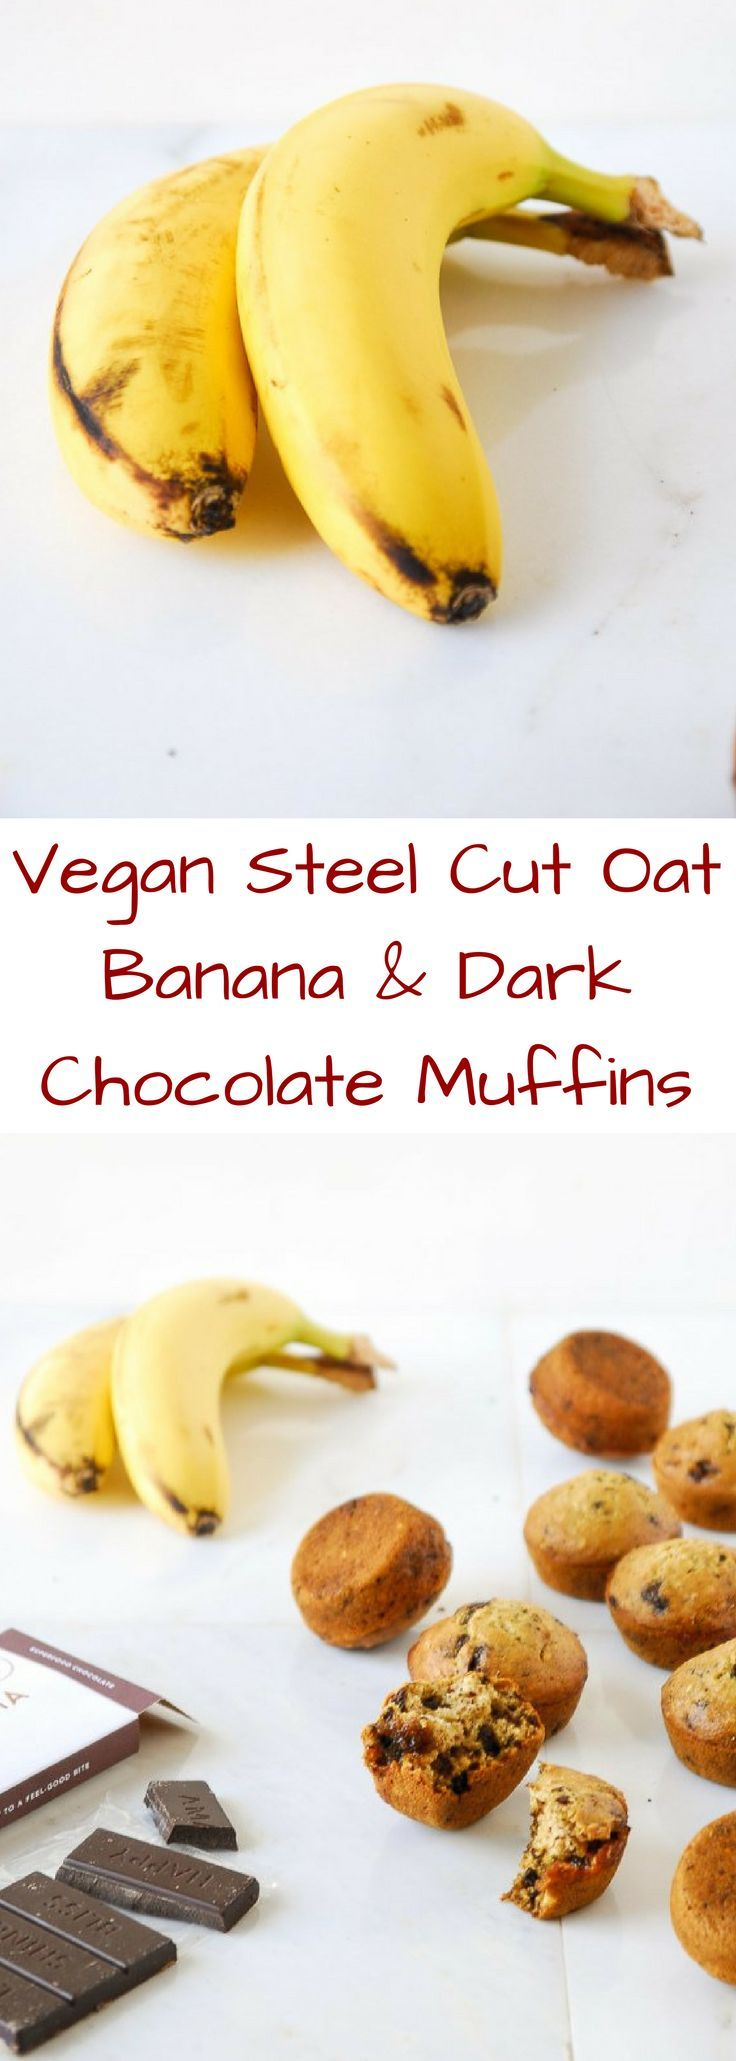 Steel cut oats are the perfect base for a vegan banana muffin studded with dark chocolate chunks!